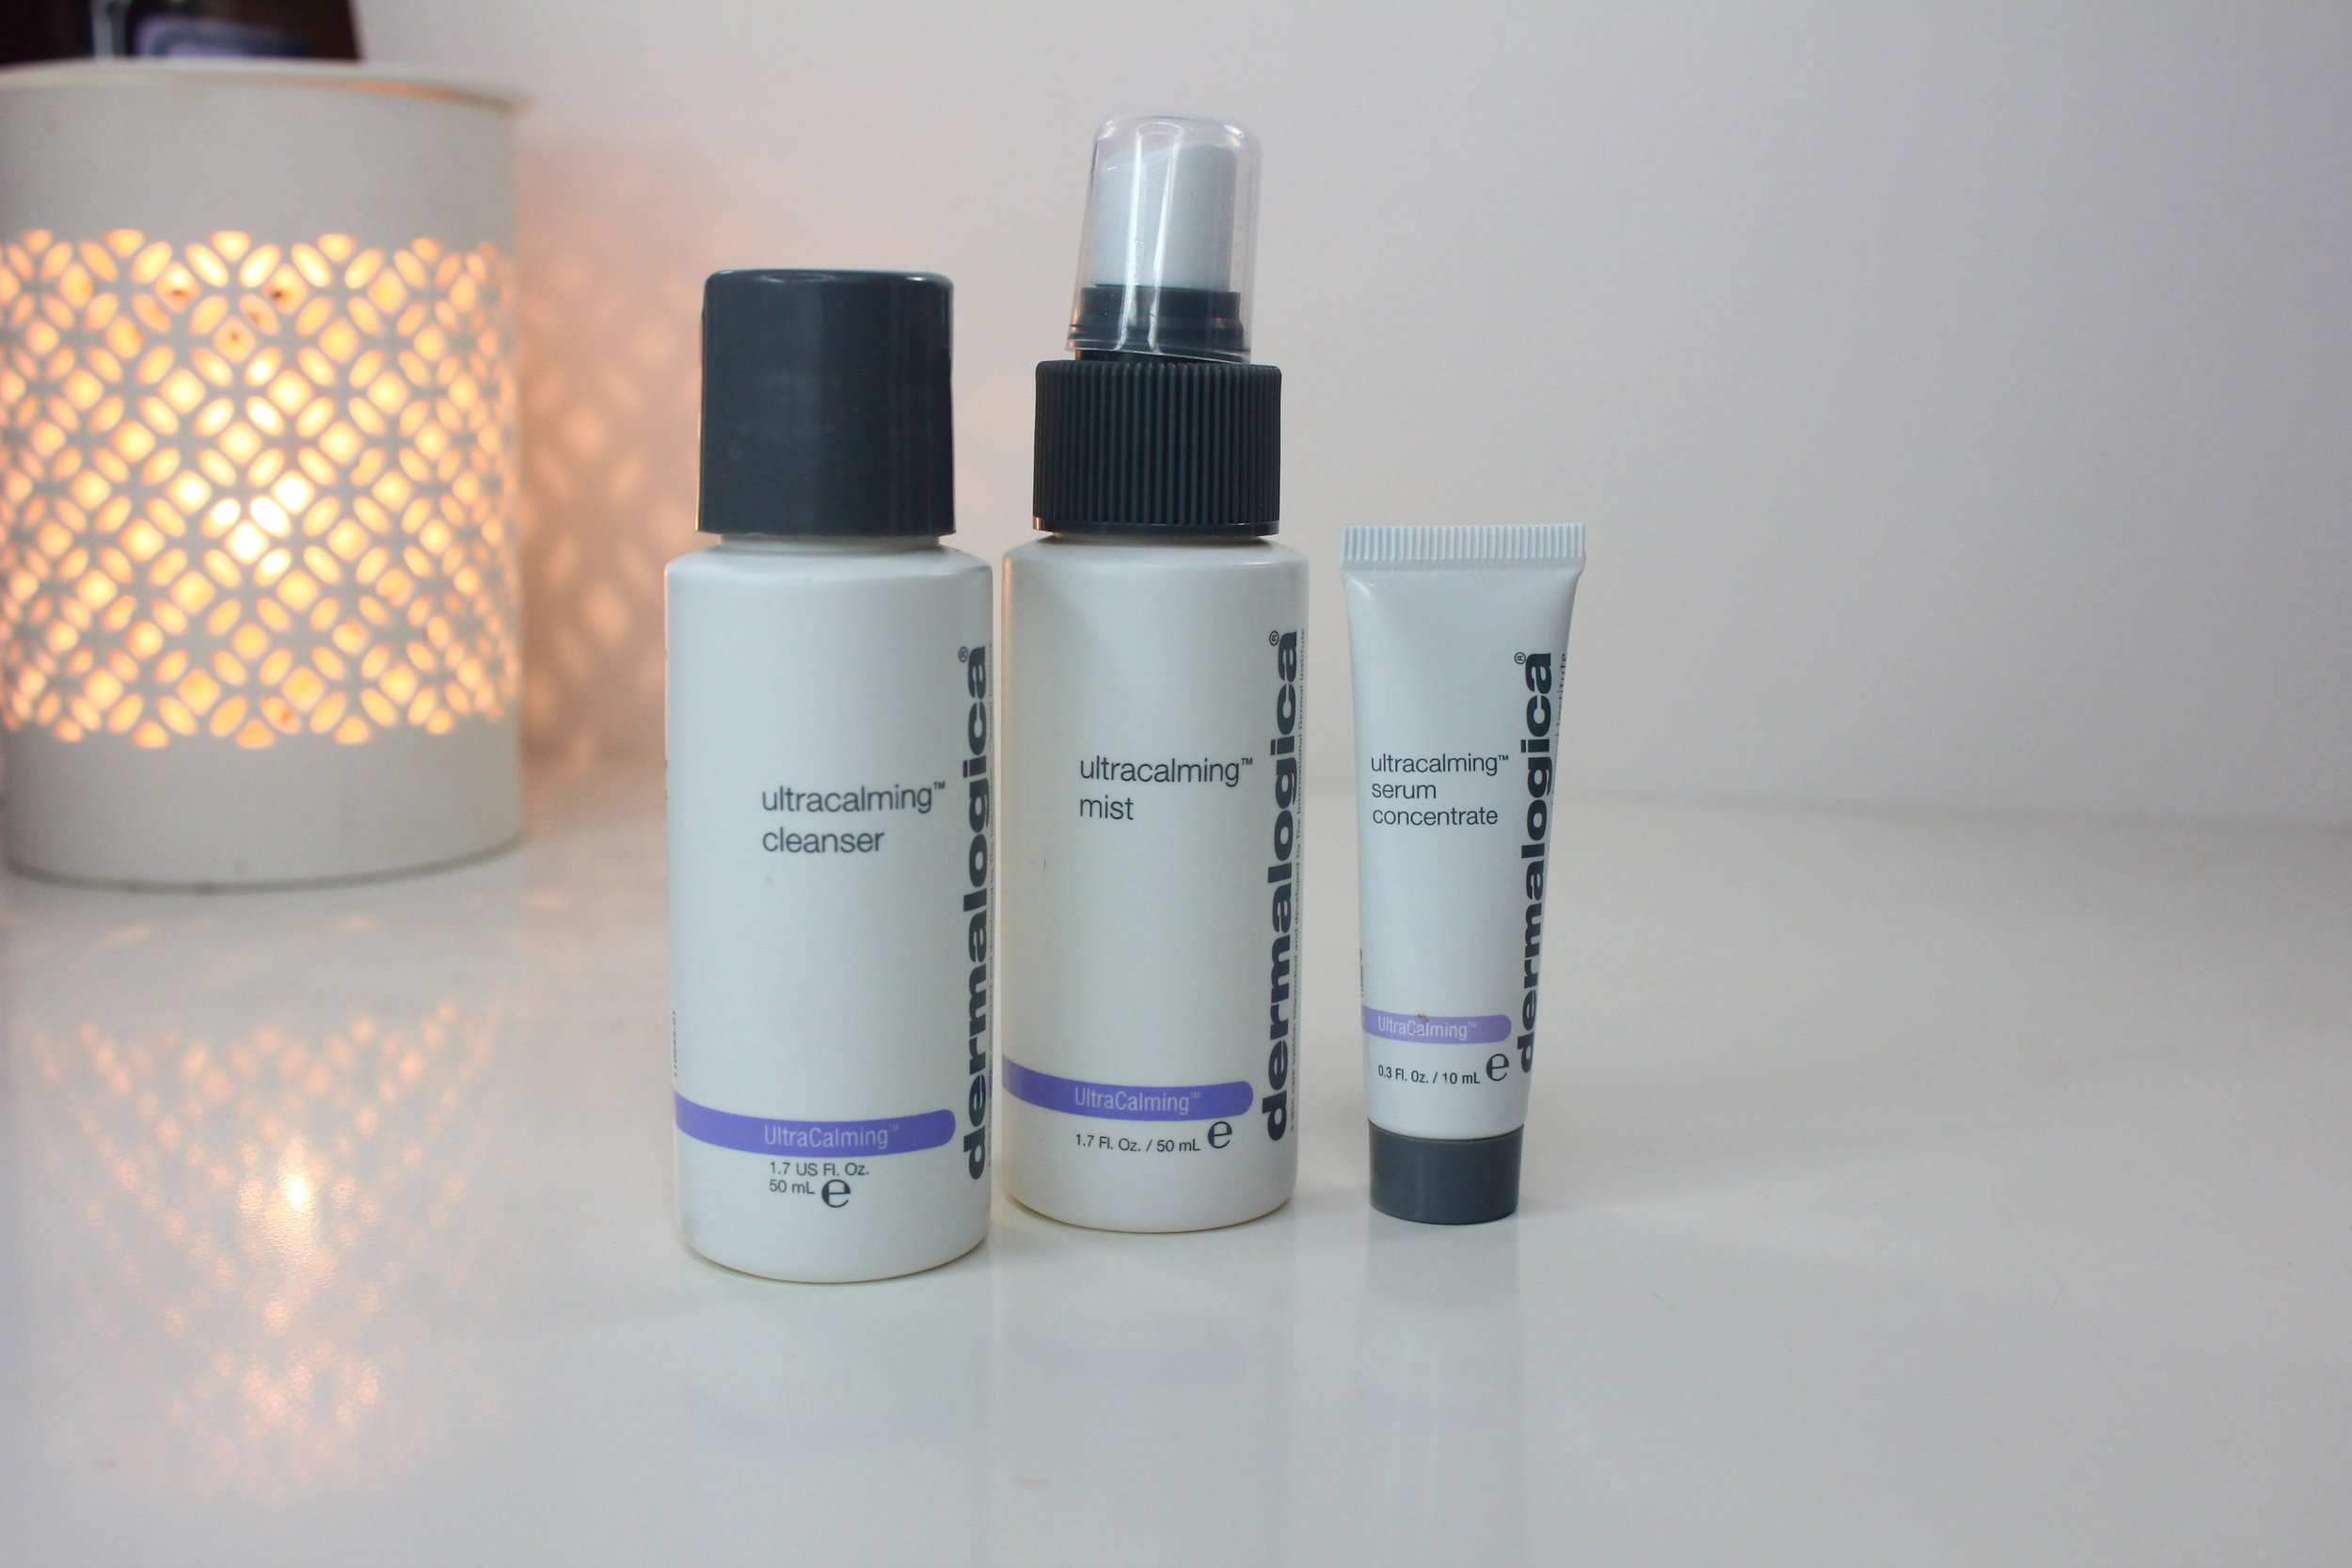 Dermalogica UltraCalming line review